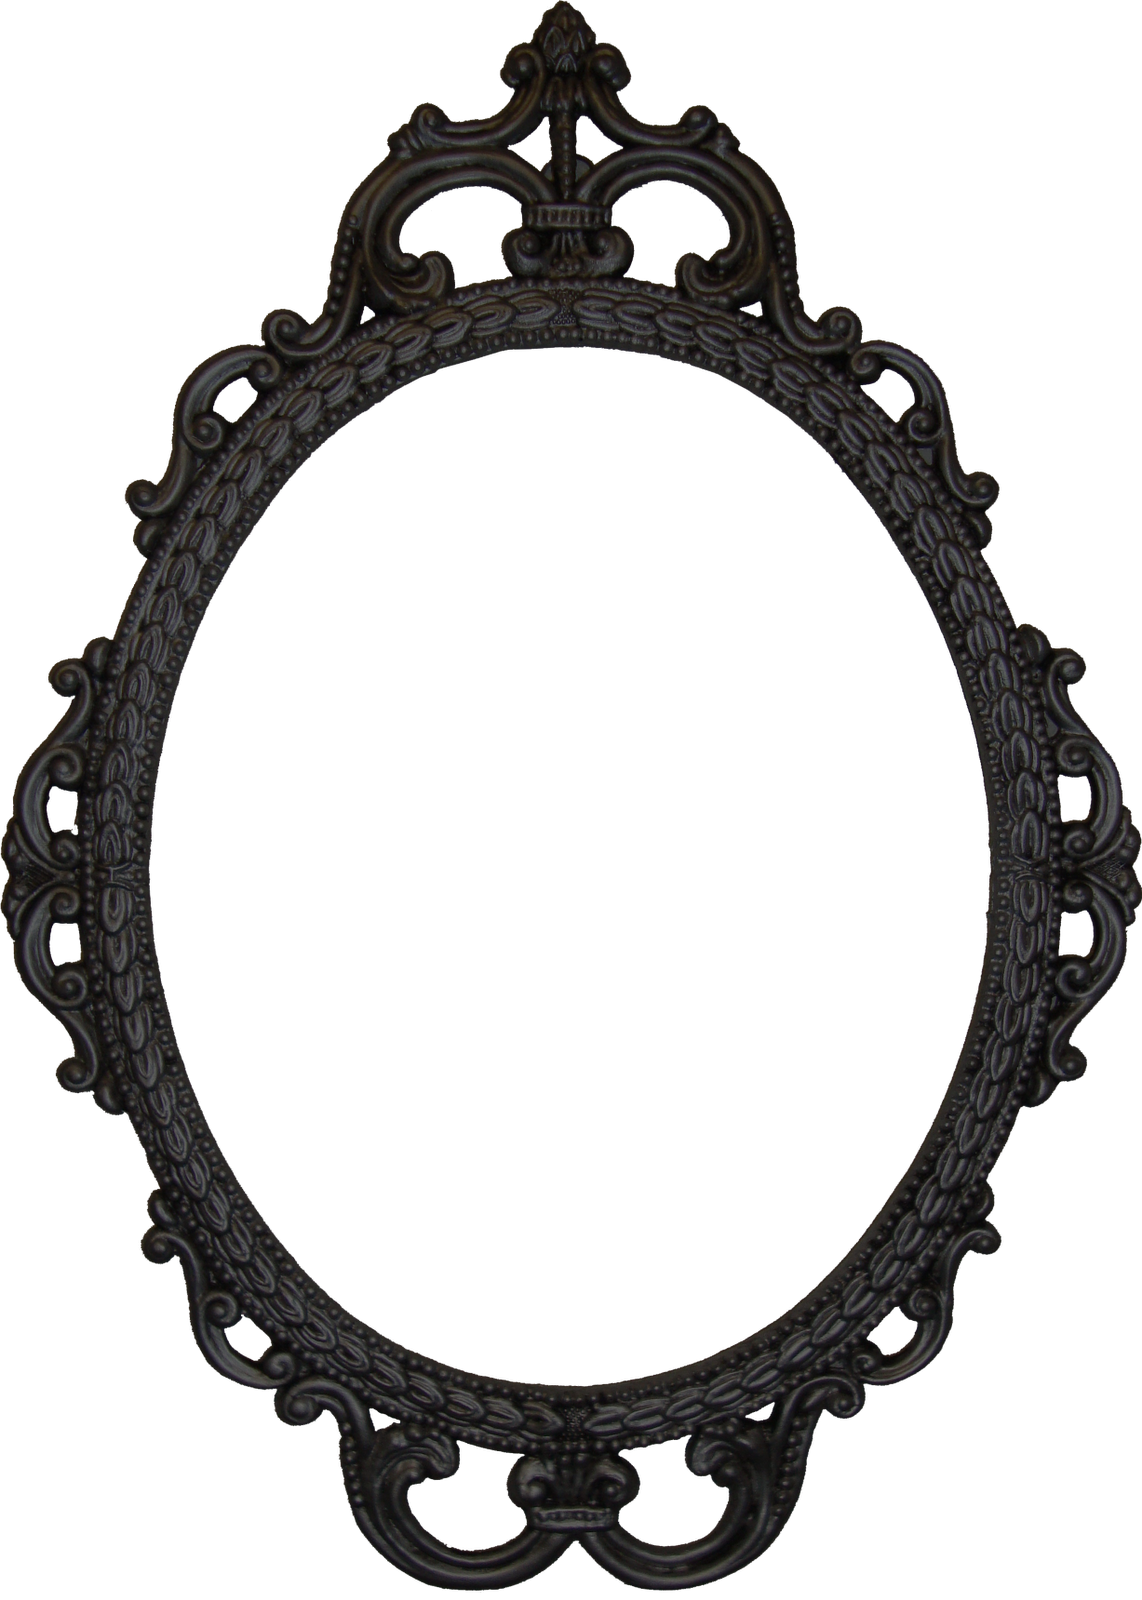 House of mirrors clipart clipart freeuse Doodle Craft...: FREE Digital Antique Photo Frames! | Pictures speak ... clipart freeuse